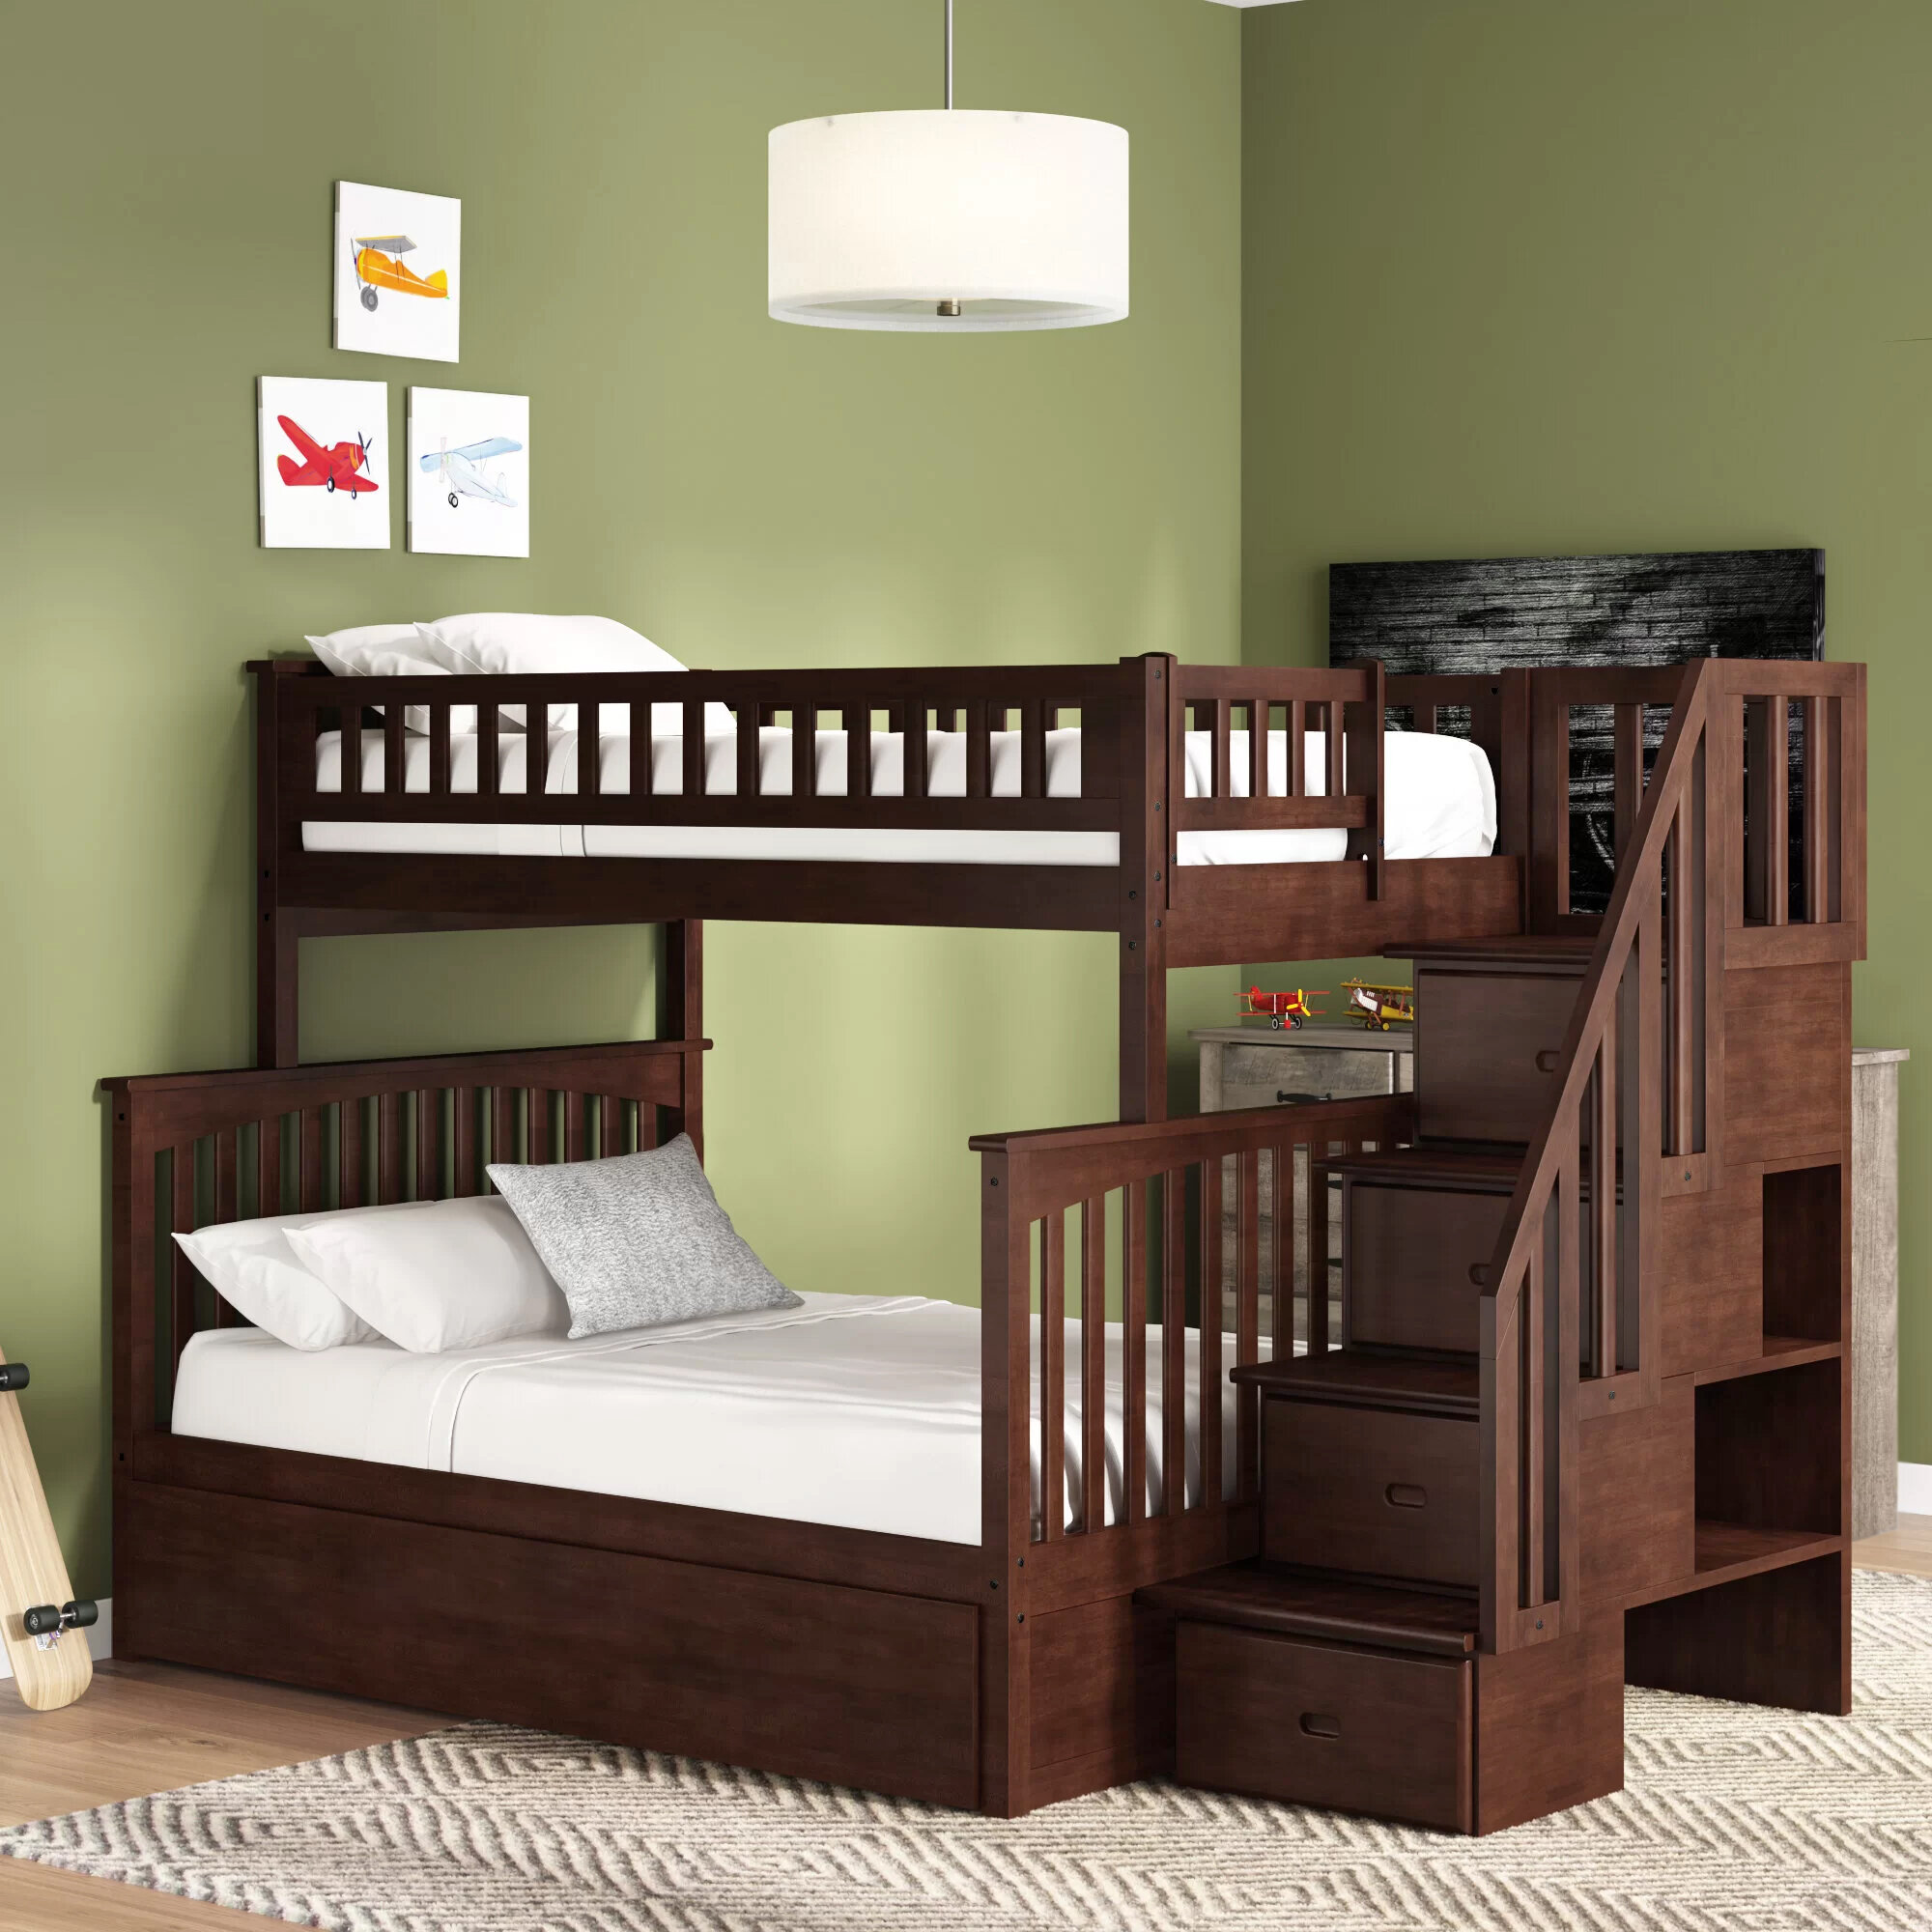 Picture of: Bunk Trundle Kids Beds You Ll Love In 2020 Wayfair